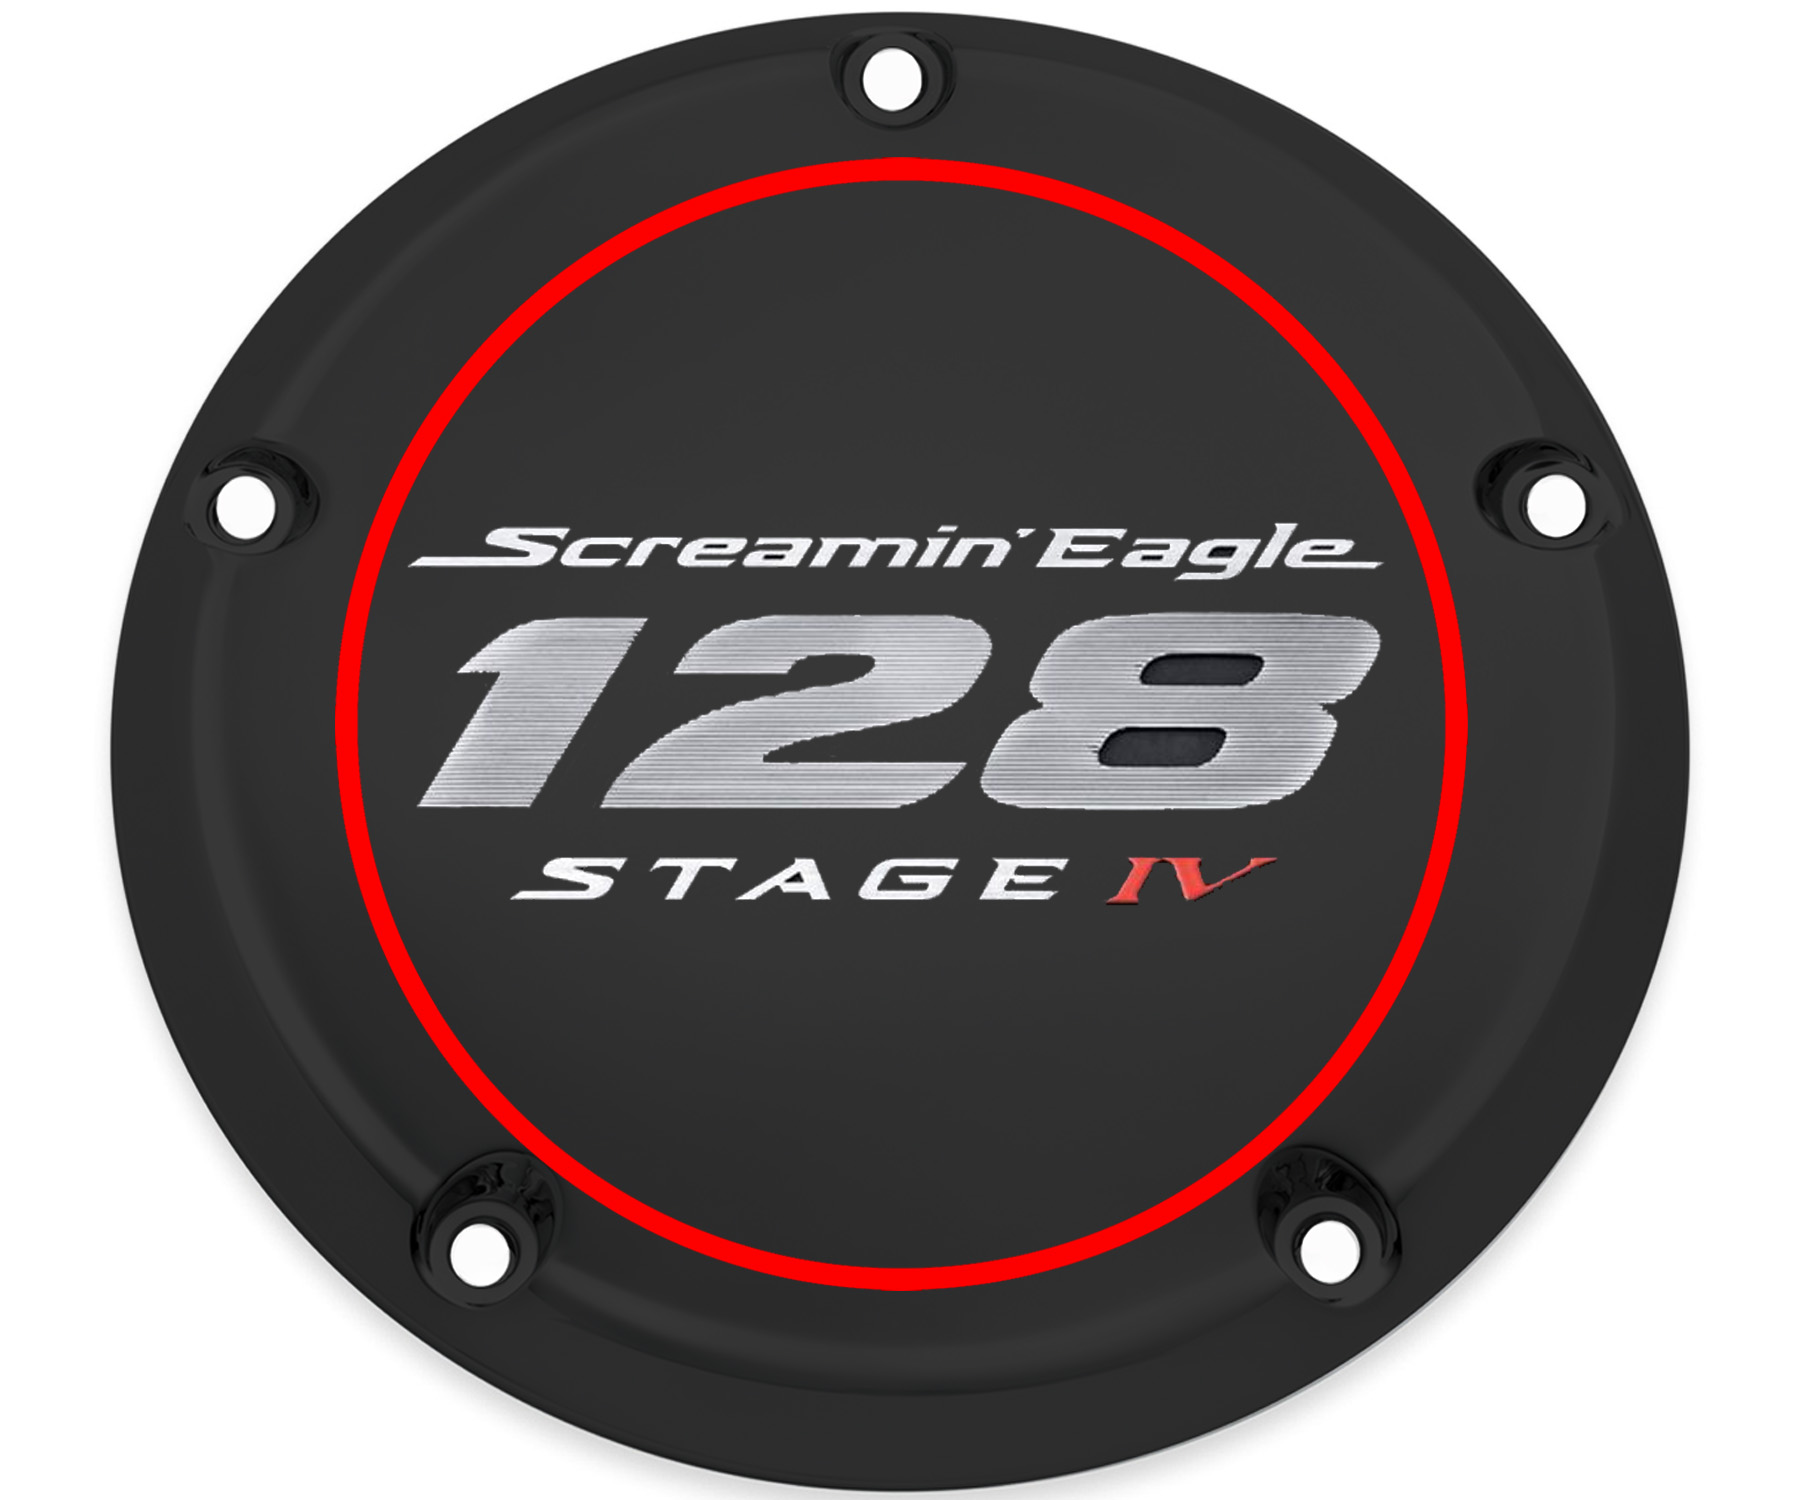 Screaming Eagle Stage IV 128 NP Derby Cover O/L